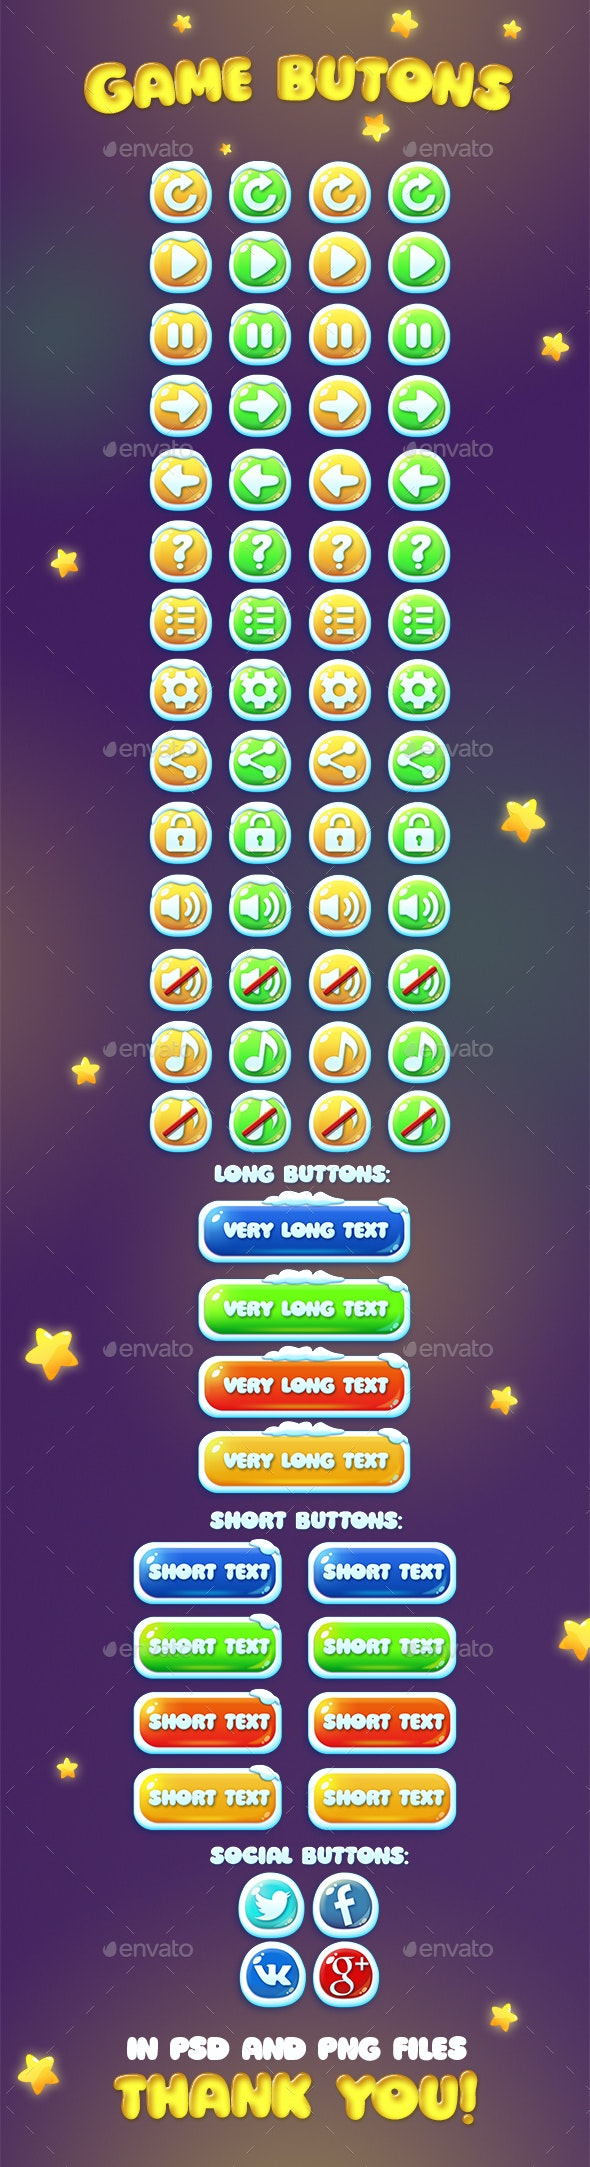 Chistmas and Usual Game Buttons Set - User Interfaces Game Assets